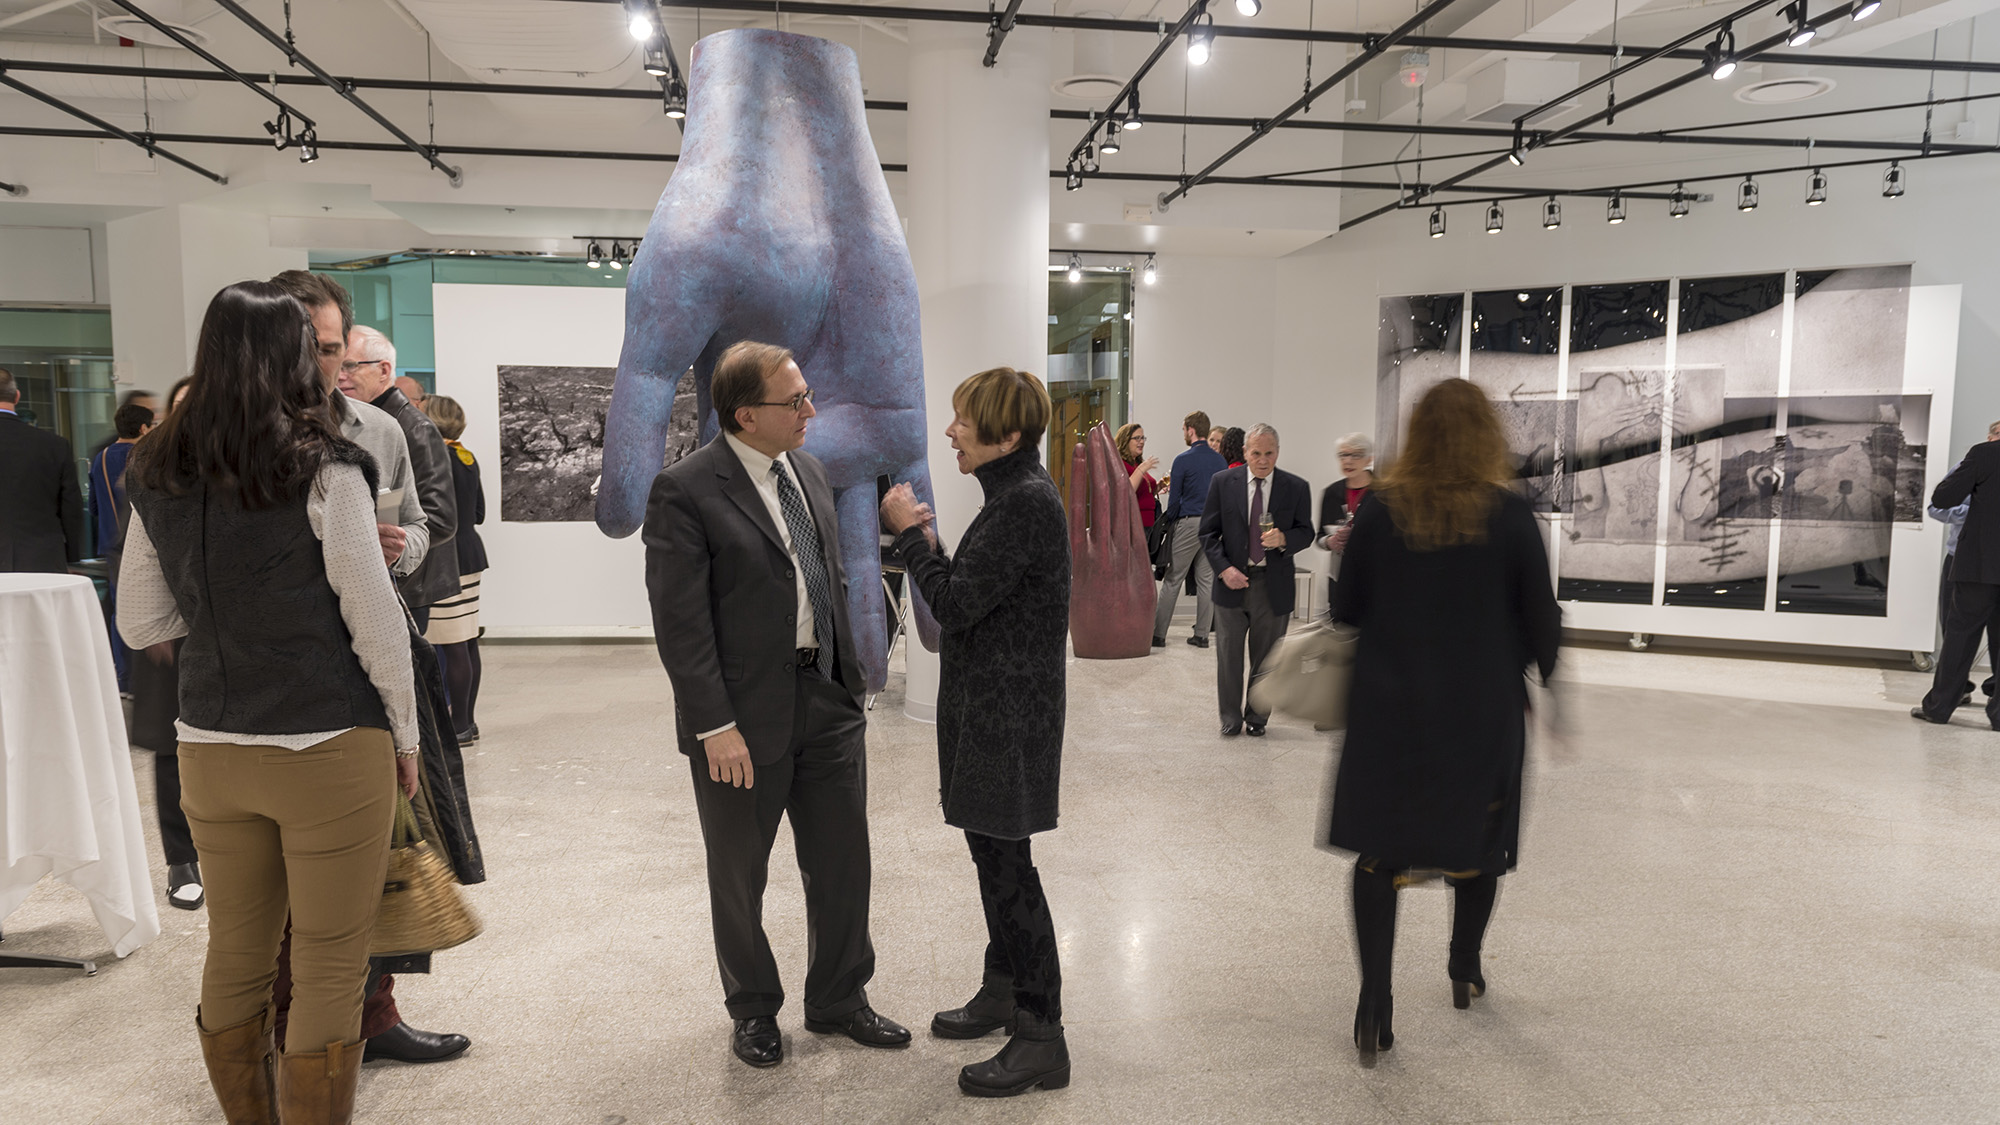 RIT City Art Space's debut exhibition featured the work of College of Art and Design faculty Len Urso and Willie Osterman.